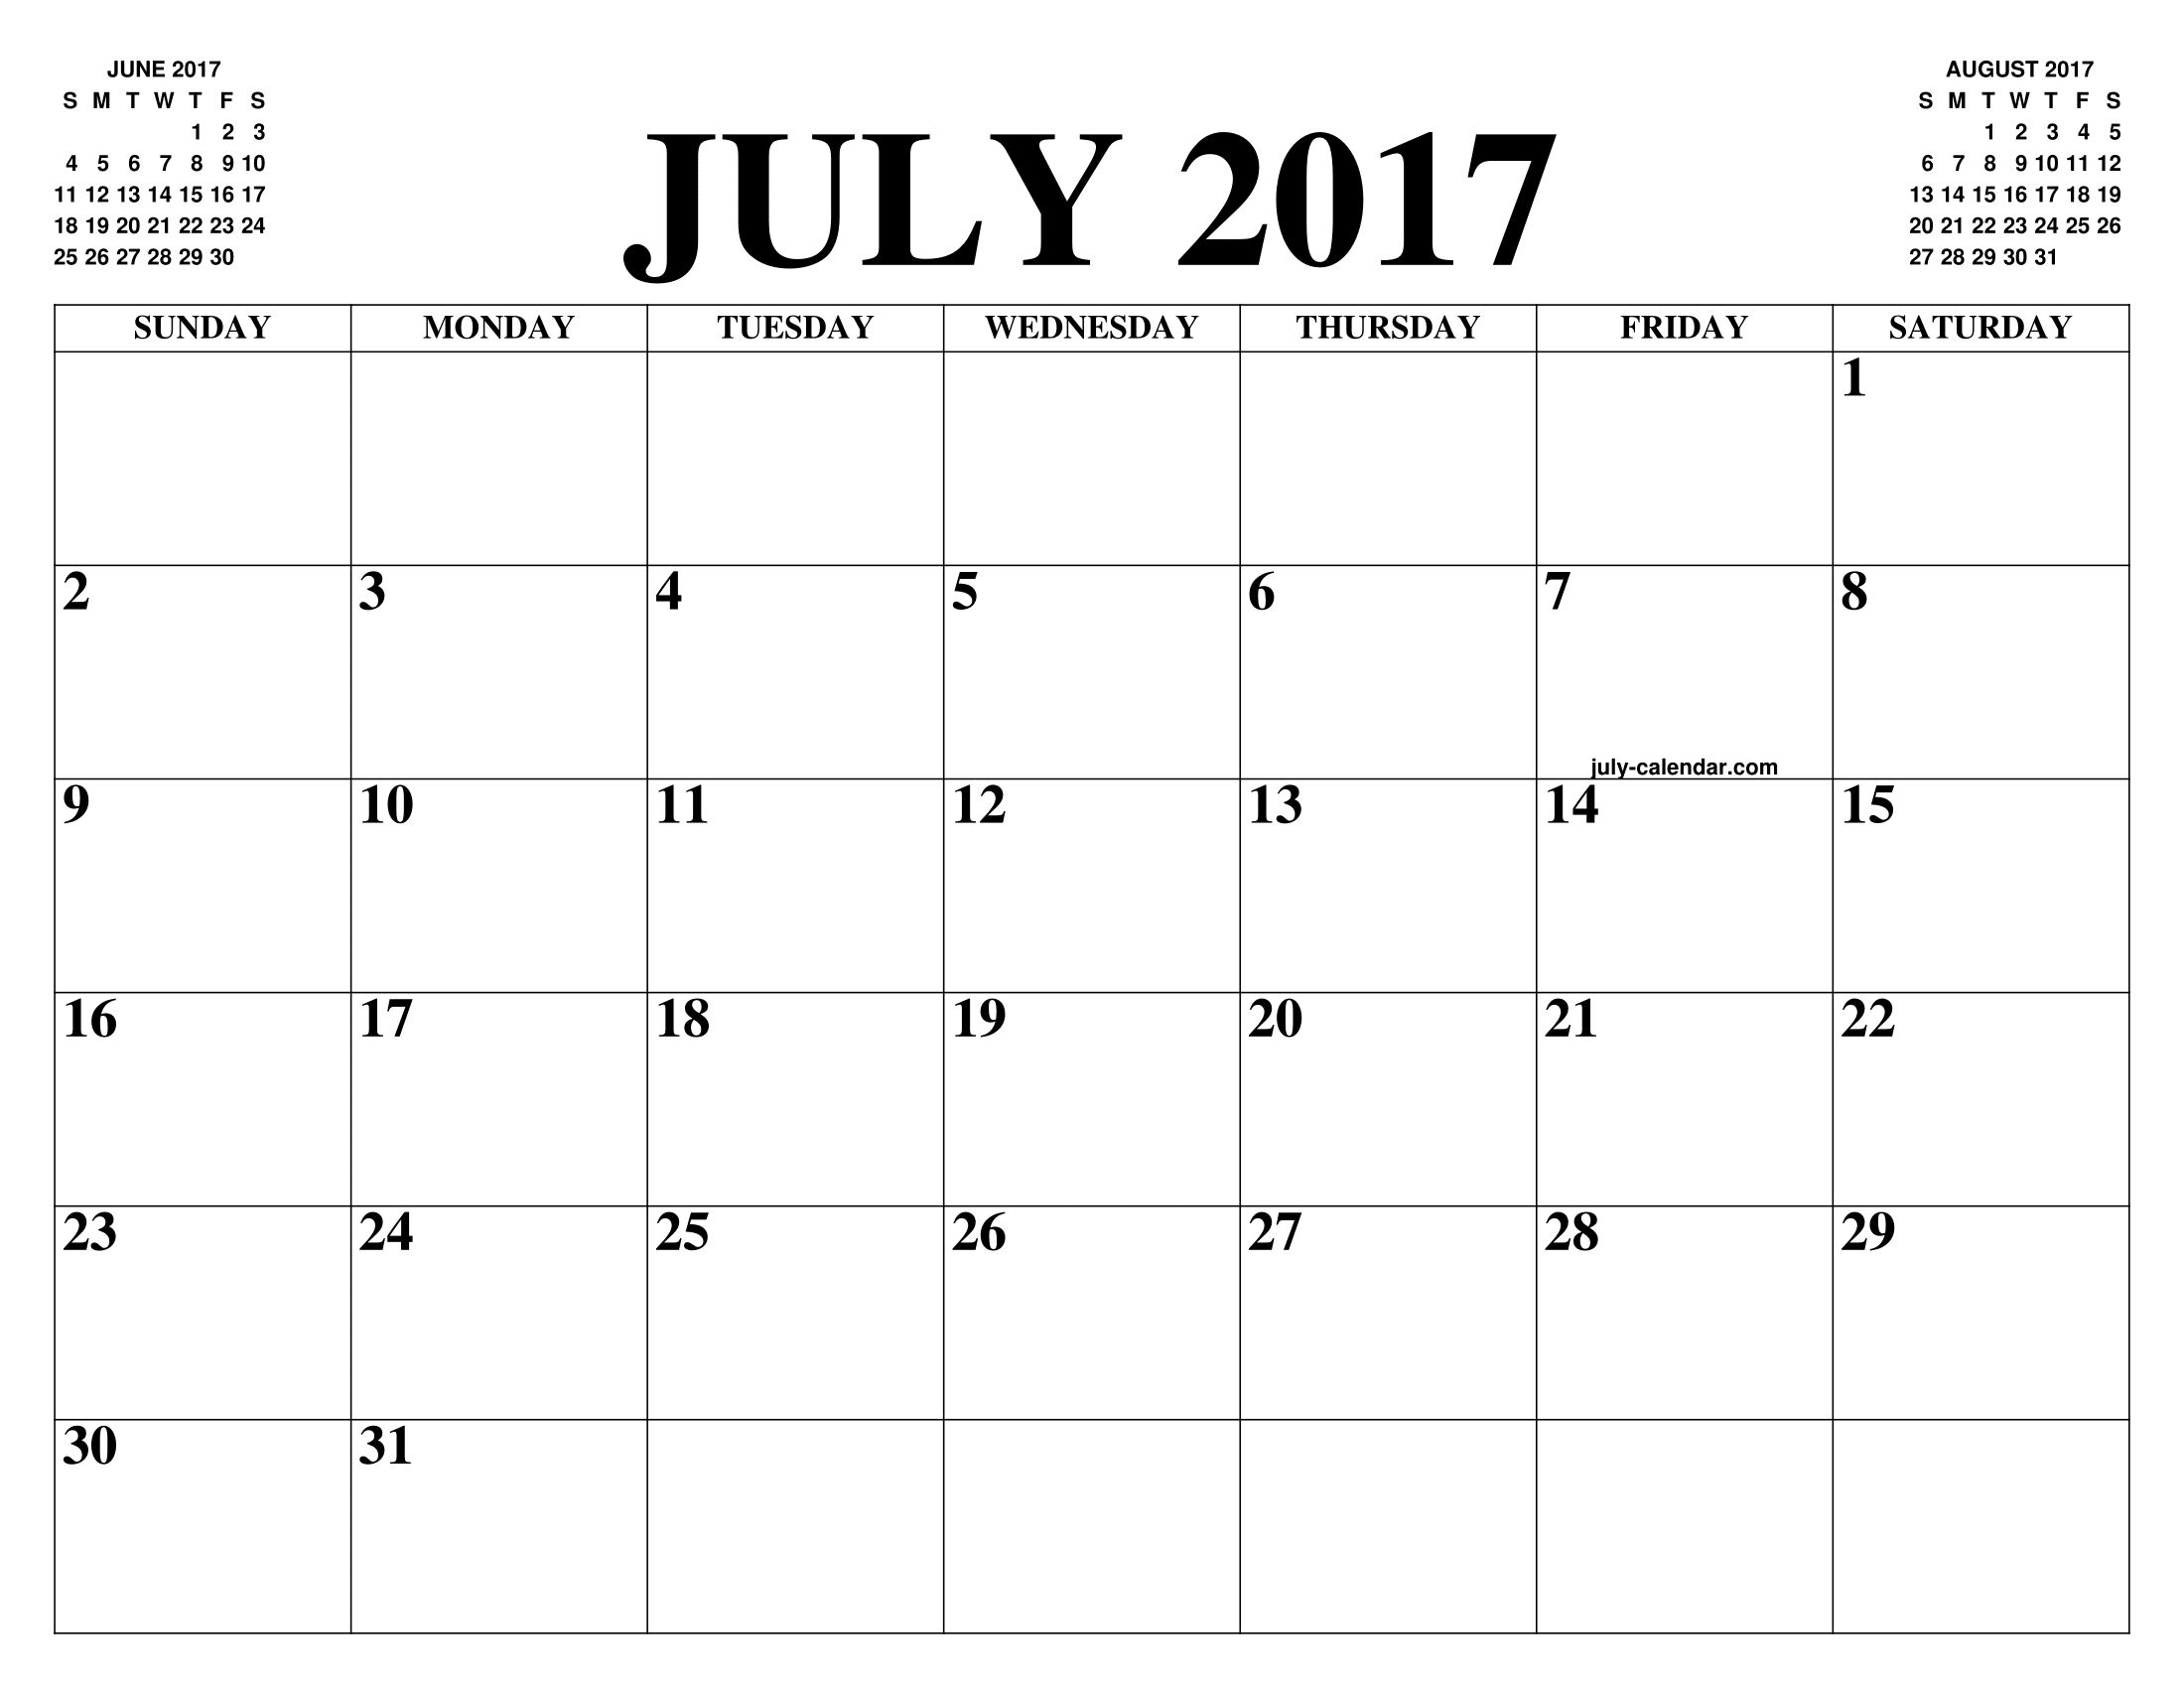 JULY 2017 CALENDAR OF THE MONTH: FREE PRINTABLE JULY